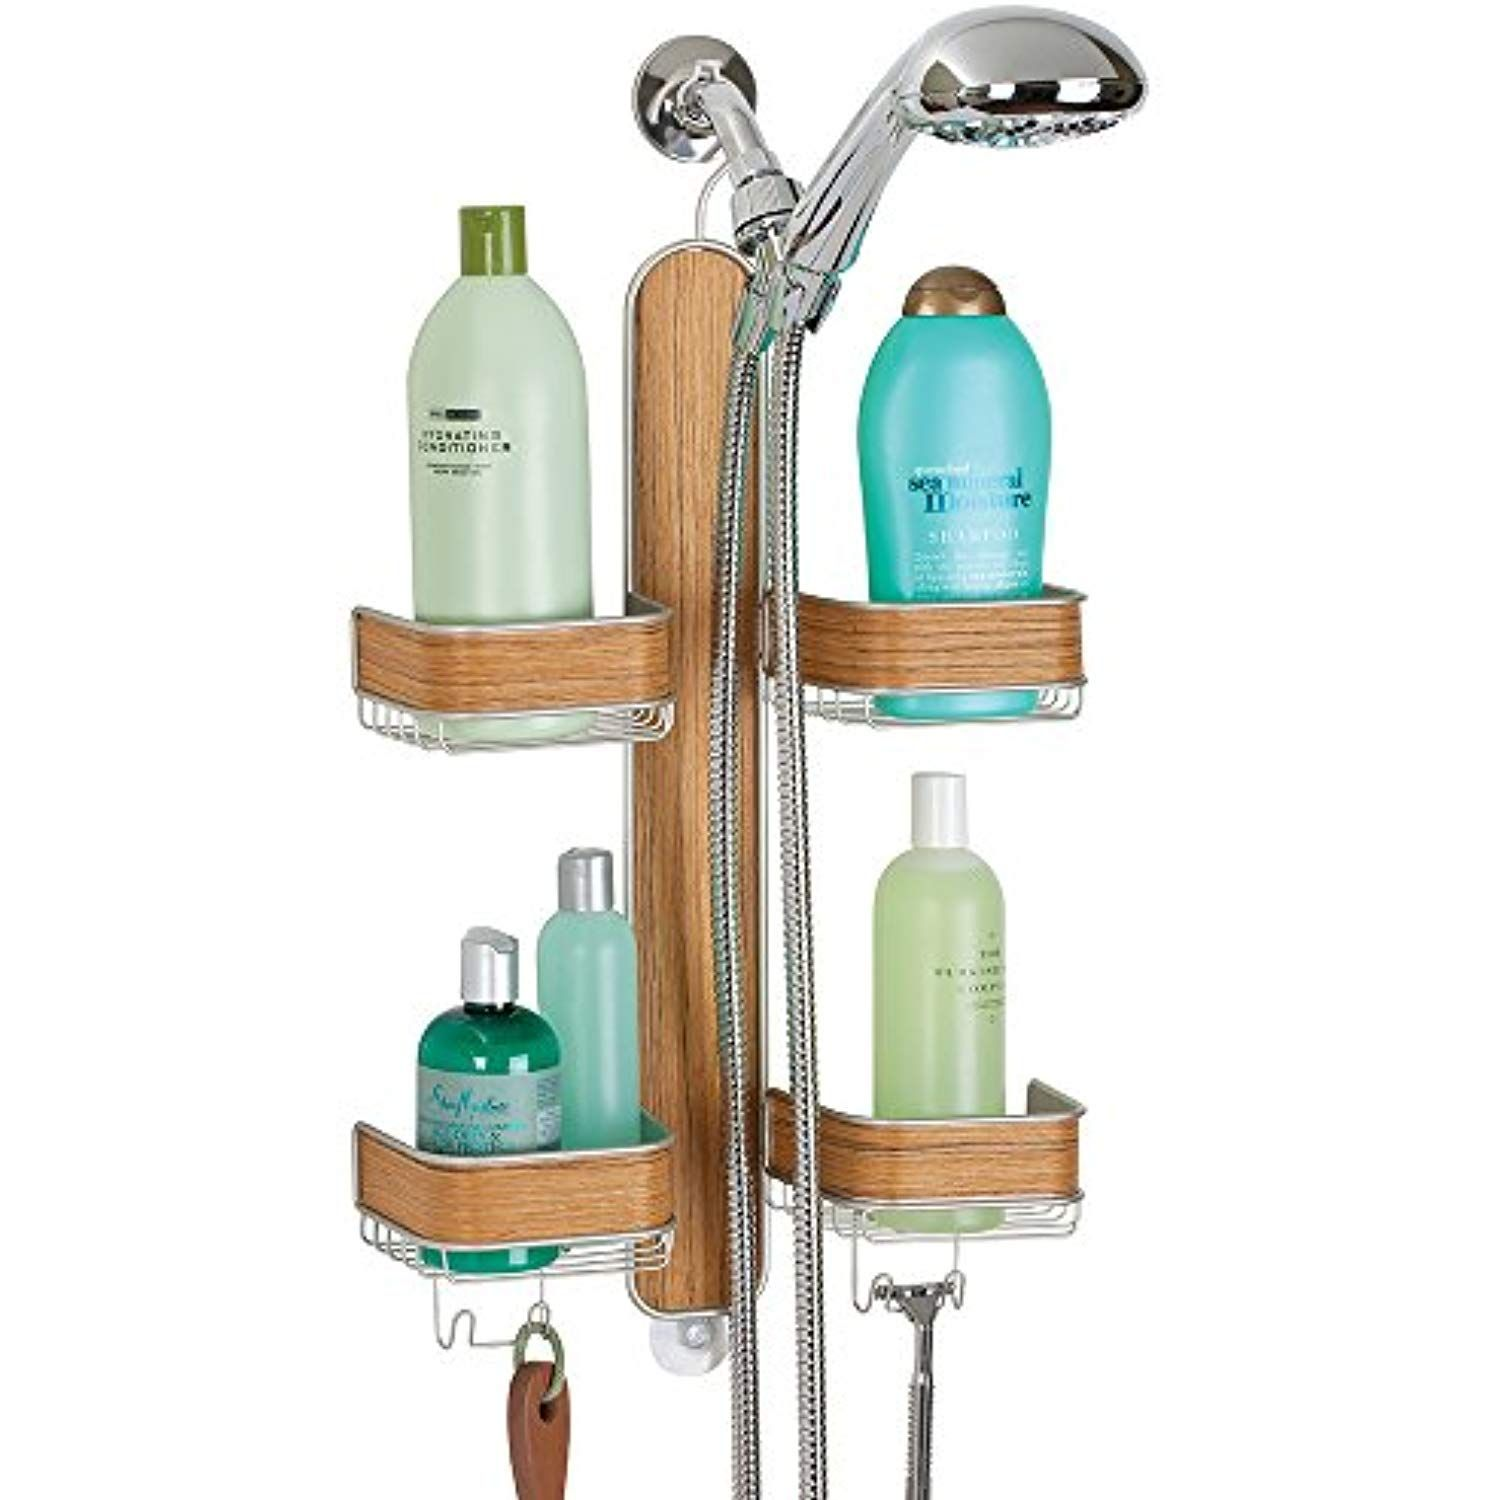 Mdesign Bathroom Shower Caddy For Hand Held Hoses Shampoo Conditioner Soap Satin Teak Wood Finish Shower Caddy Storage Hanging Shower Caddy Shower Caddy